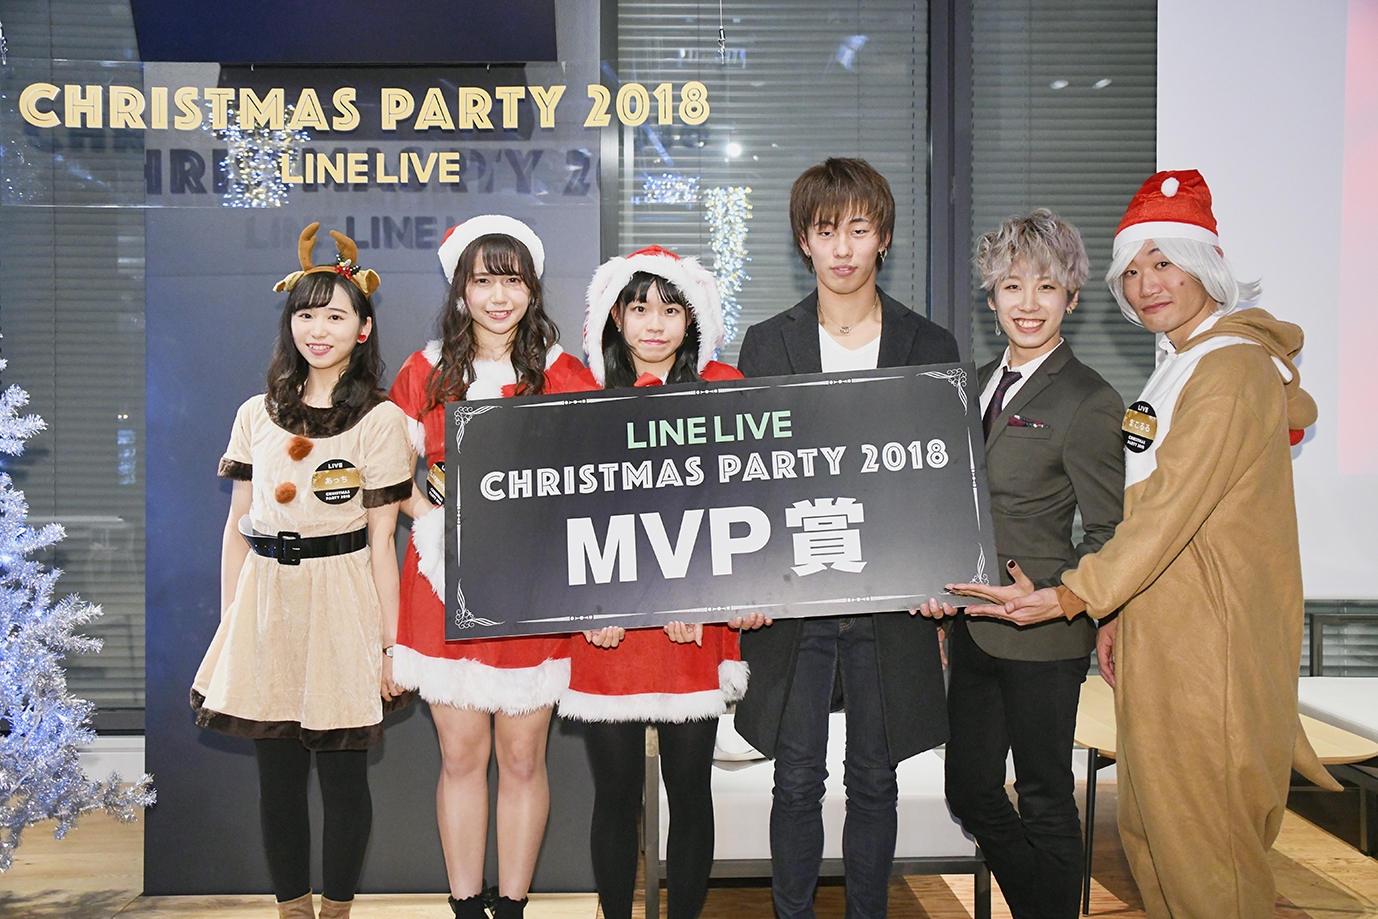 LINE LIVE Christmas Party 2018